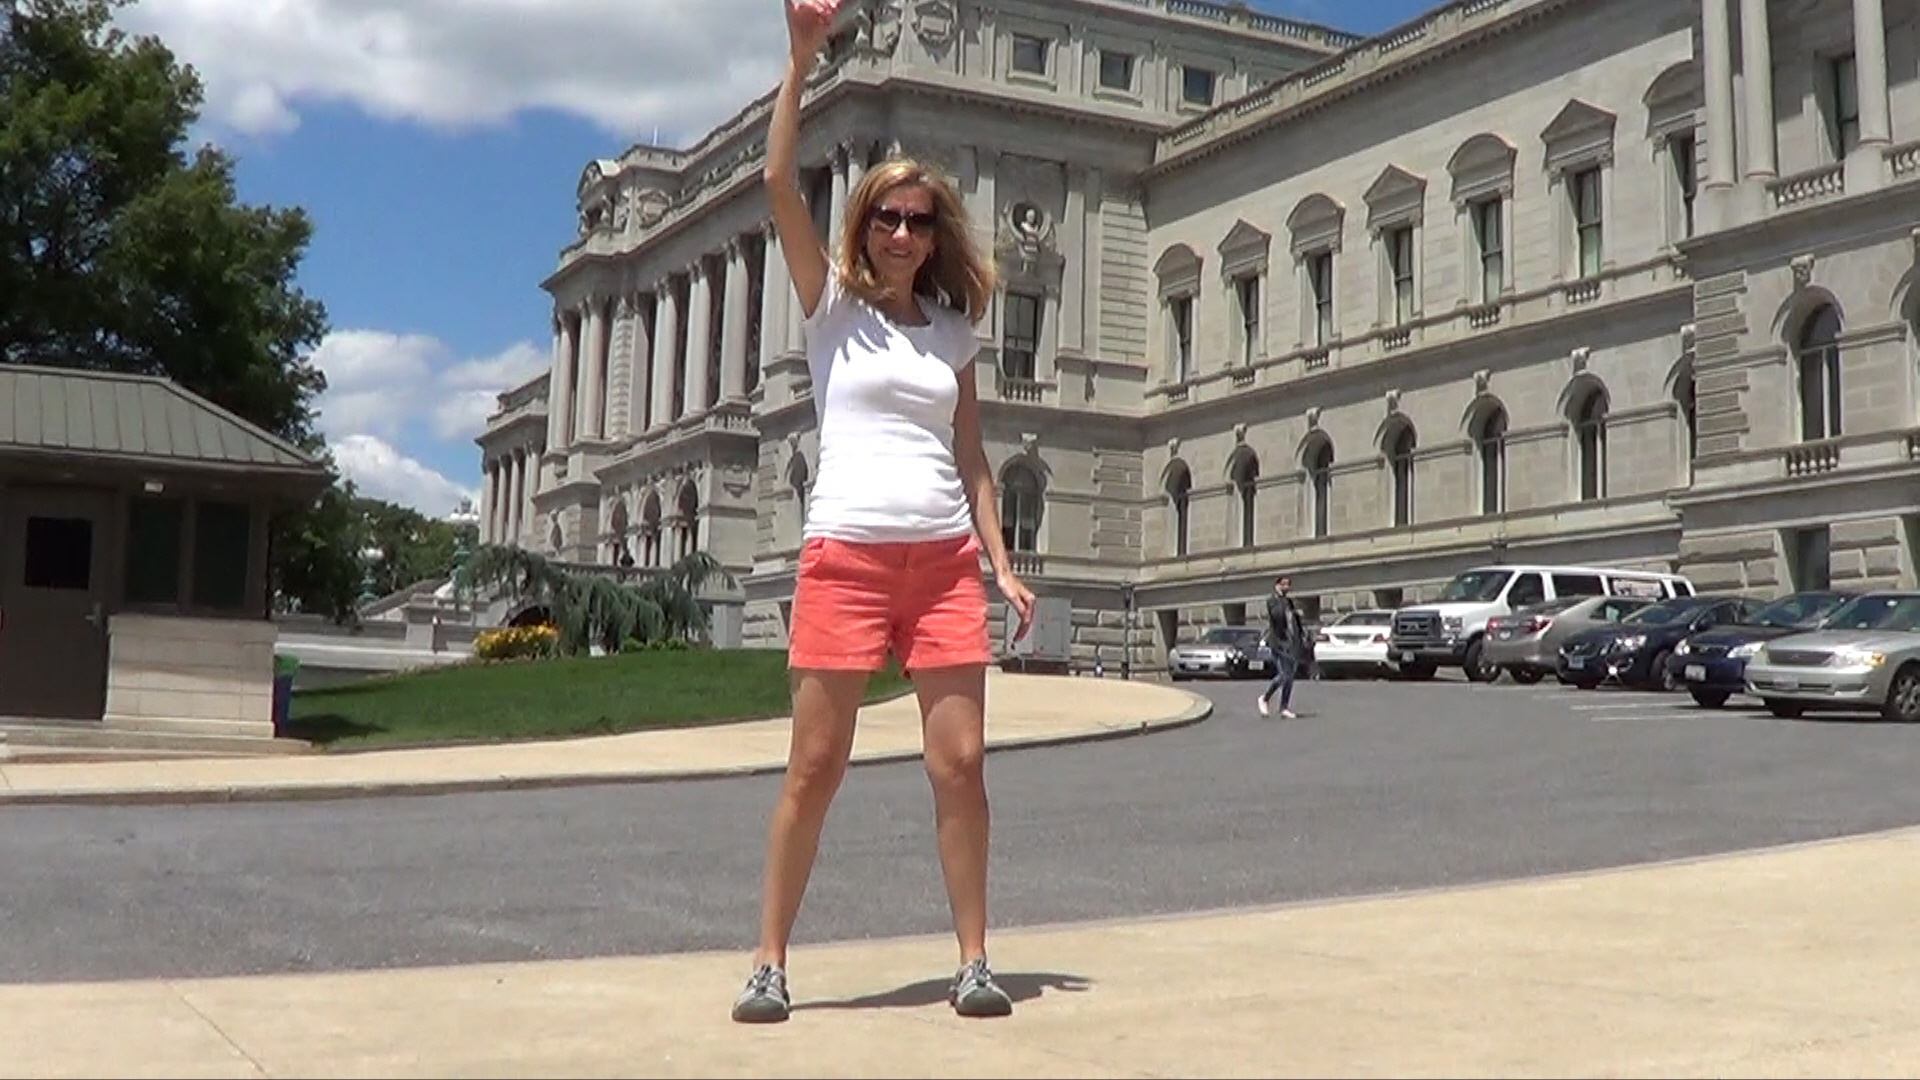 10 - Library of Congress